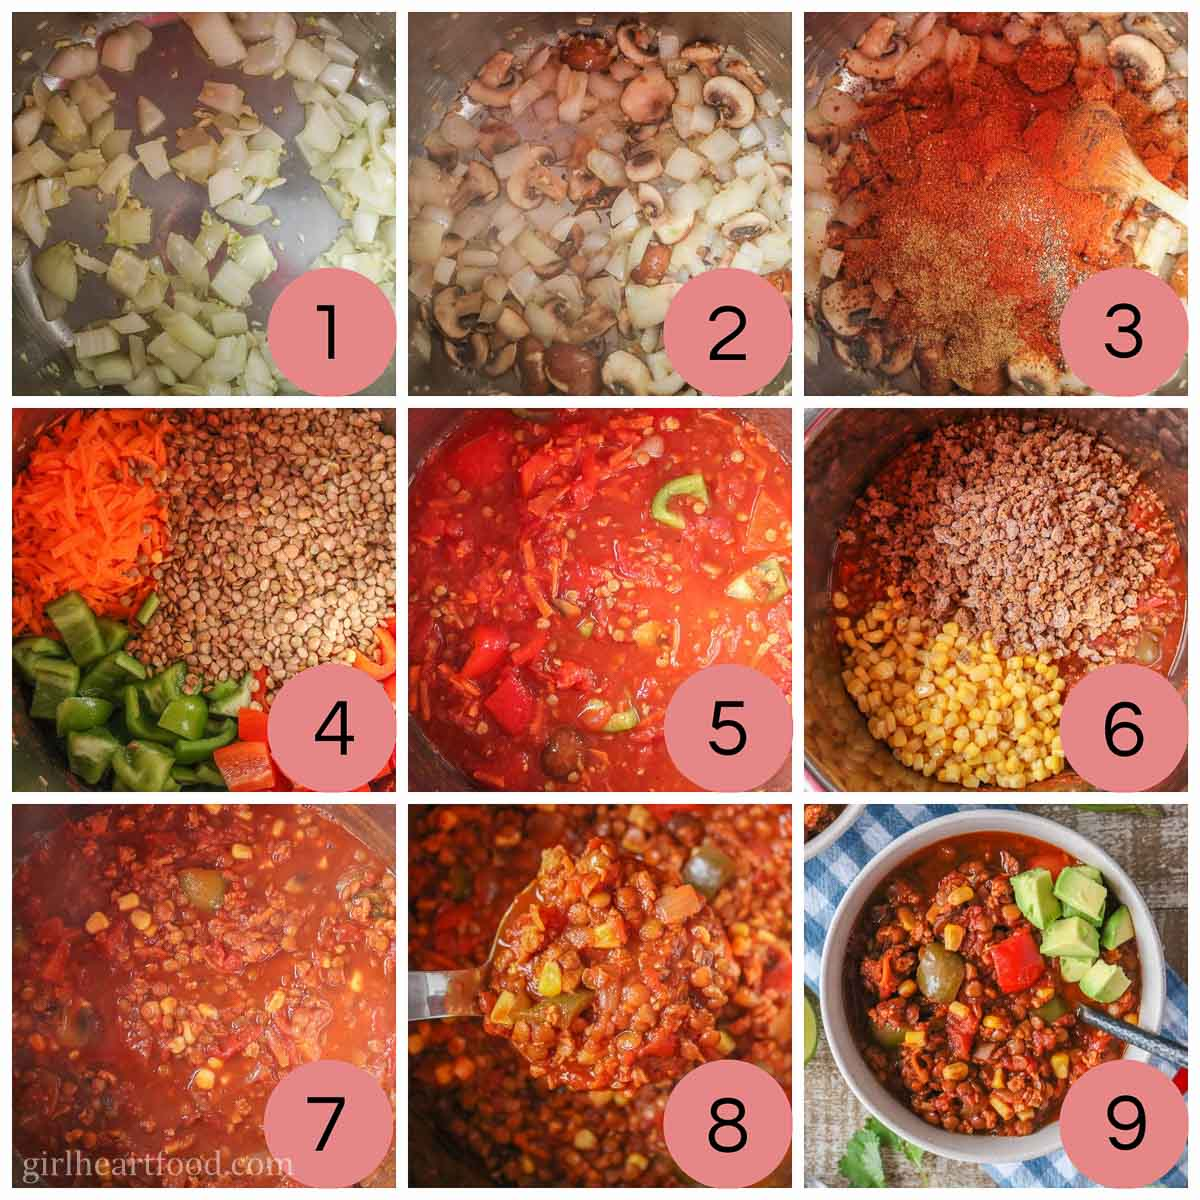 Collage of steps to make a lentil chili recipe.